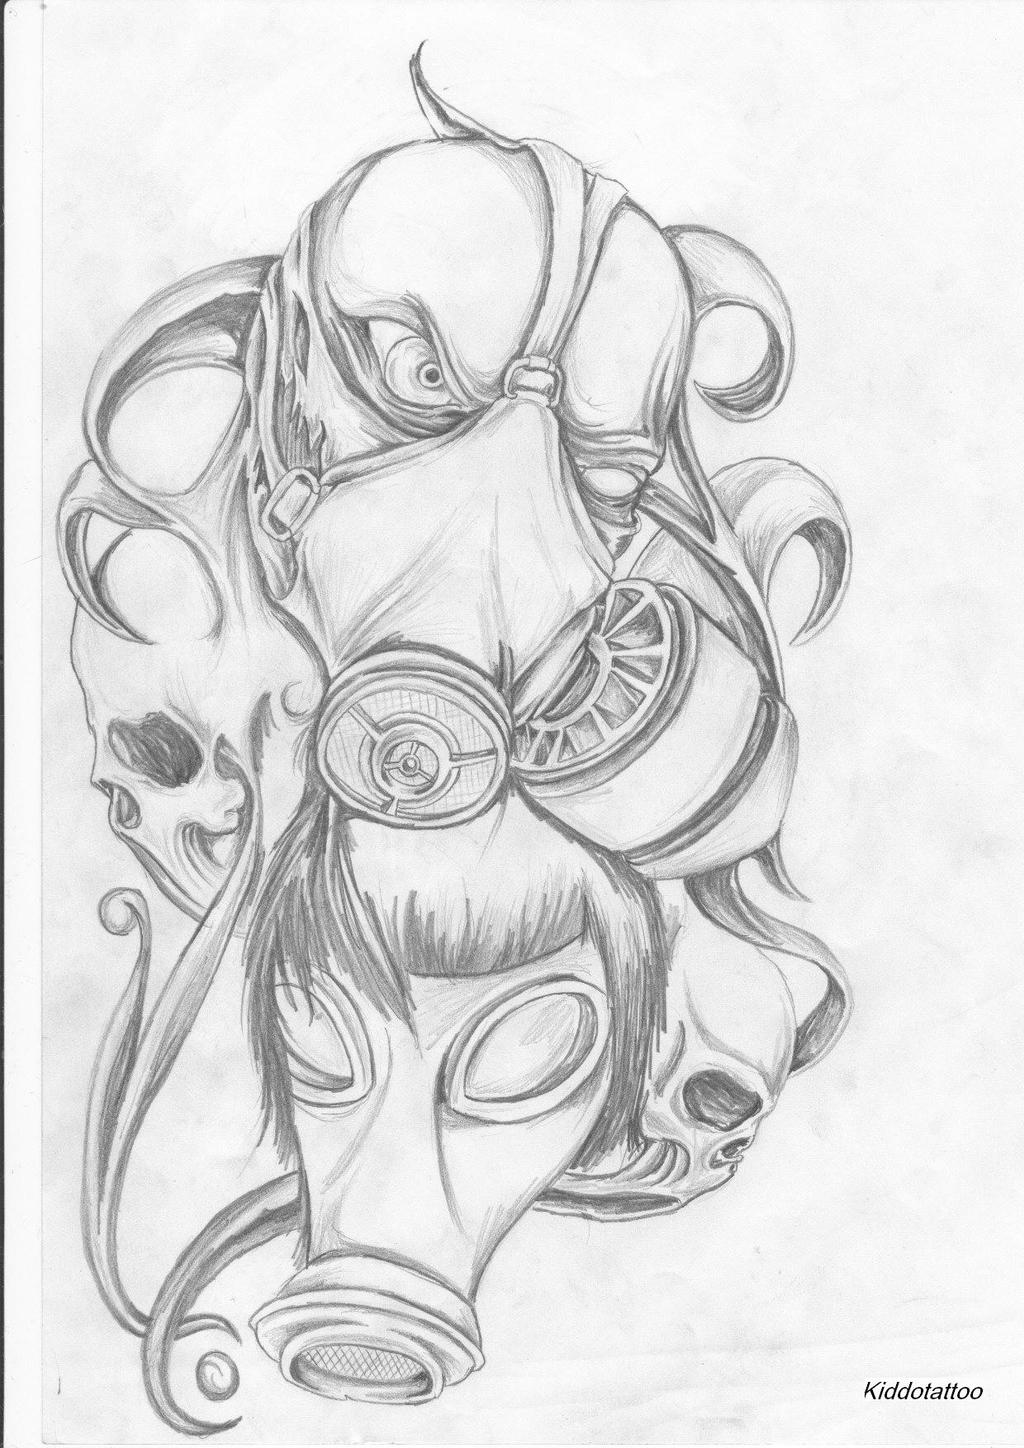 gas mask by Kiddotattoo on DeviantArt Gas Mask Tattoo Sketch